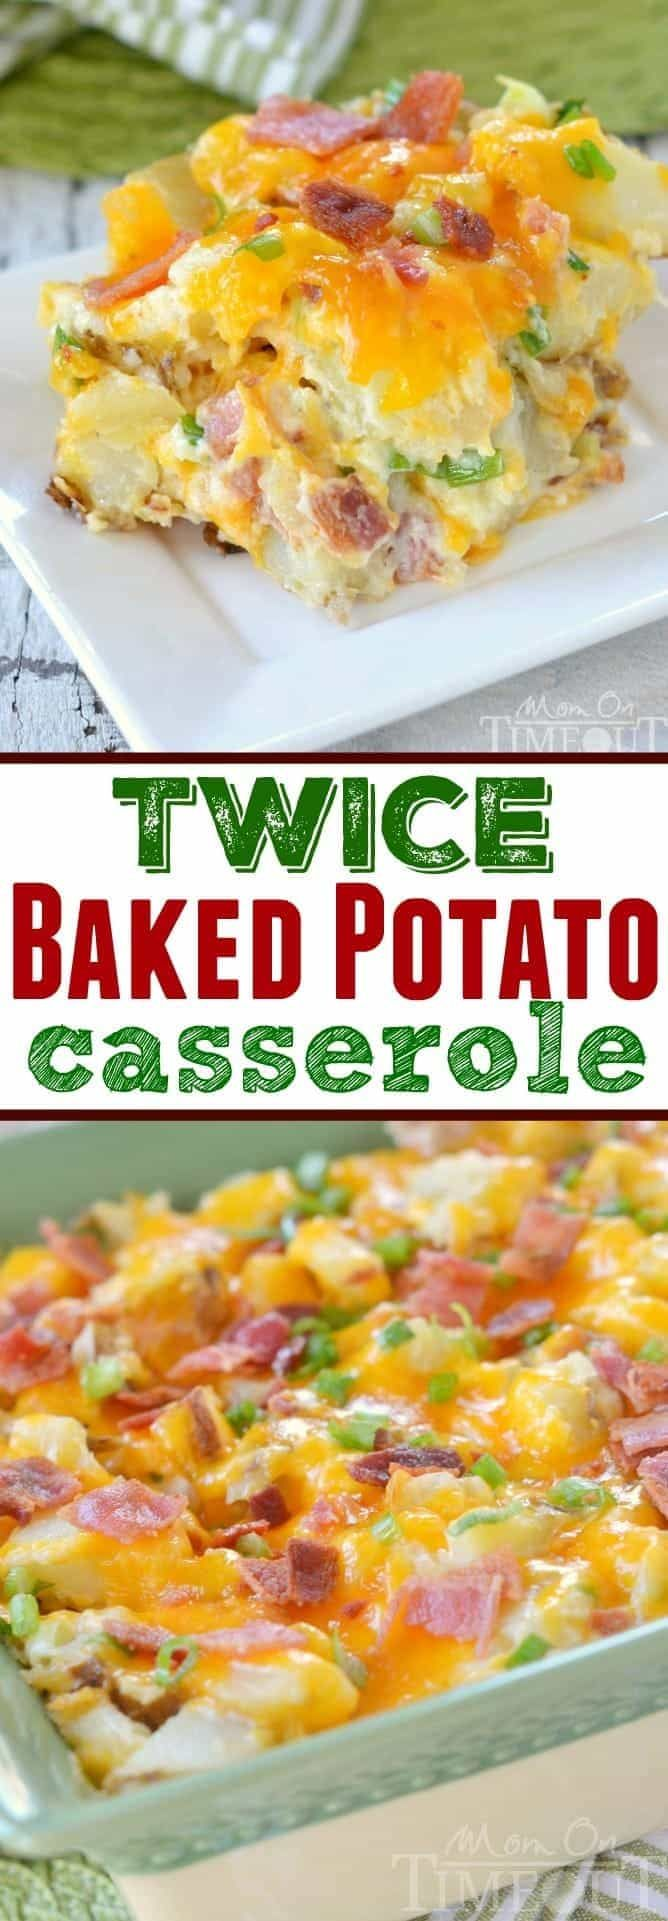 There's nothing more comforting than twice baked potatoes - unless you turn them into a casserole! This Twice Baked Potato Casserole has all your favorite flavors from a twice baked potato but in a delicious casserole form - yum! // Mom On Timeout #sidedish #potato #potatorecipe #cheese #bacon #recipe #Christmas #thanksgiving